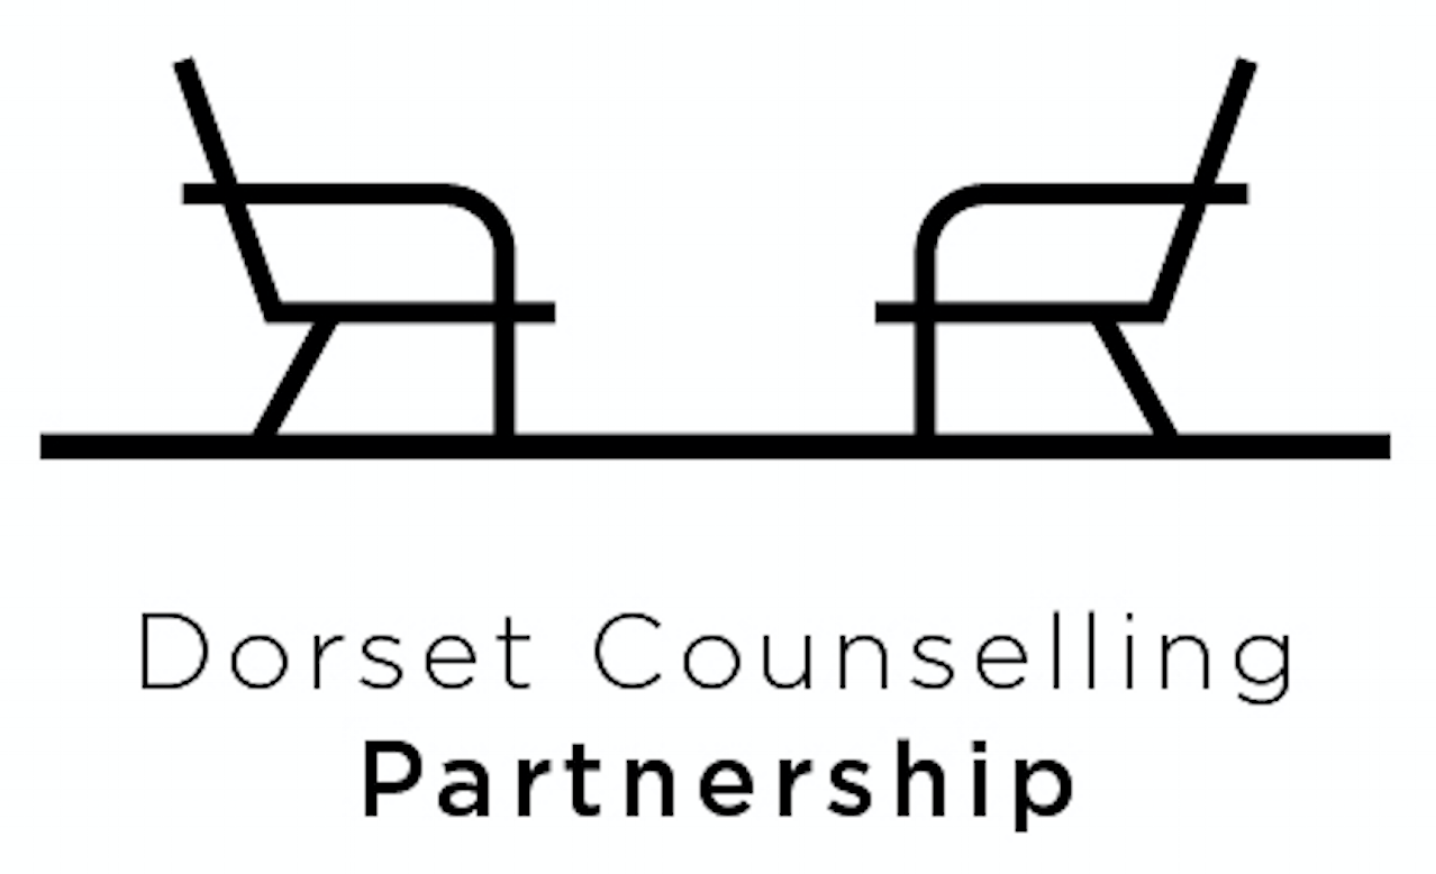 Dorset Counselling Partnership